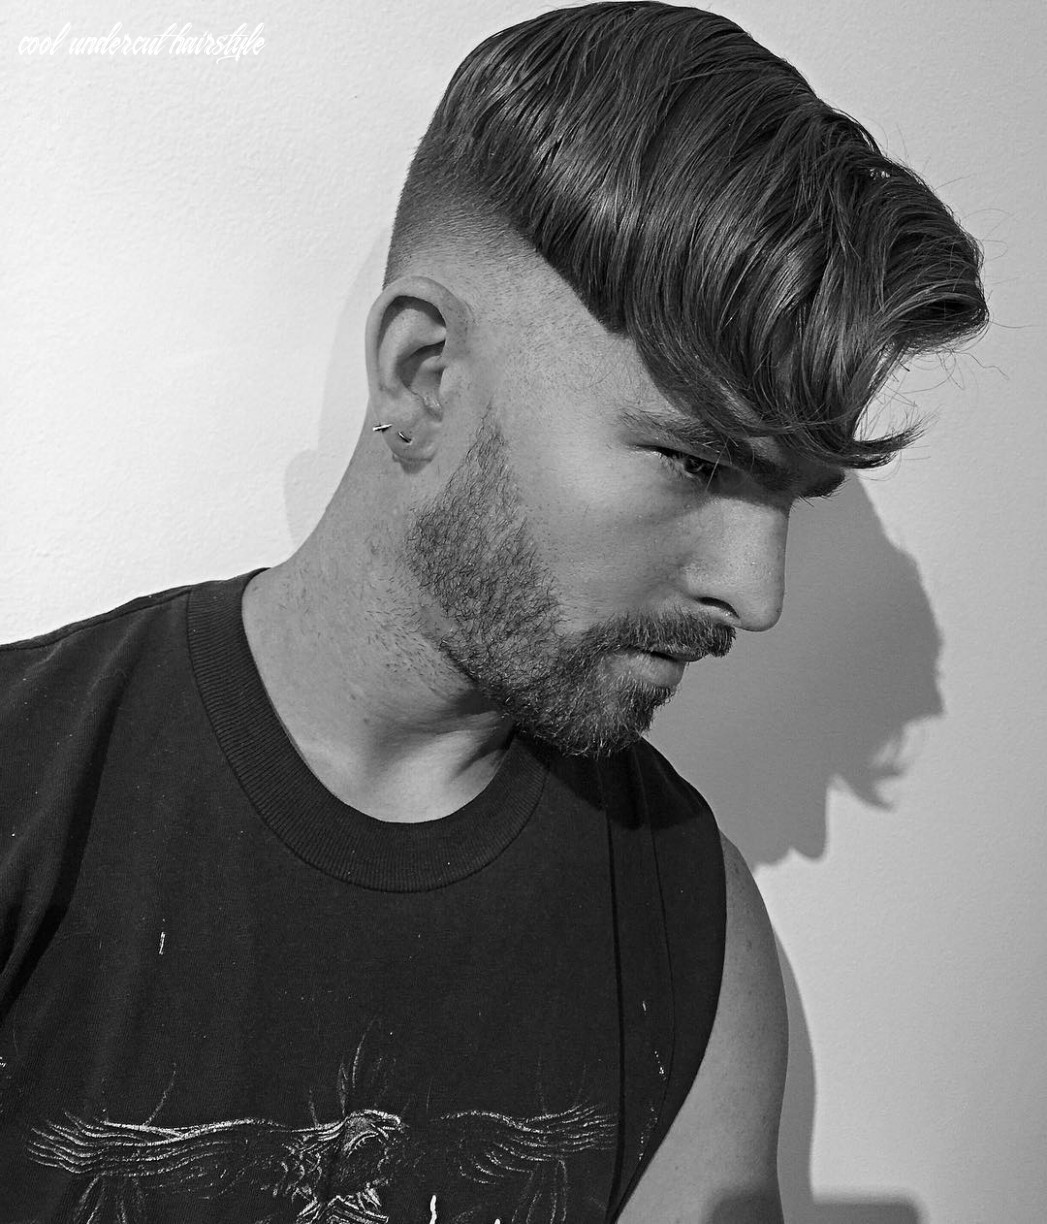 Top 8 undercut haircuts hairstyles for men (8 update) cool undercut hairstyle